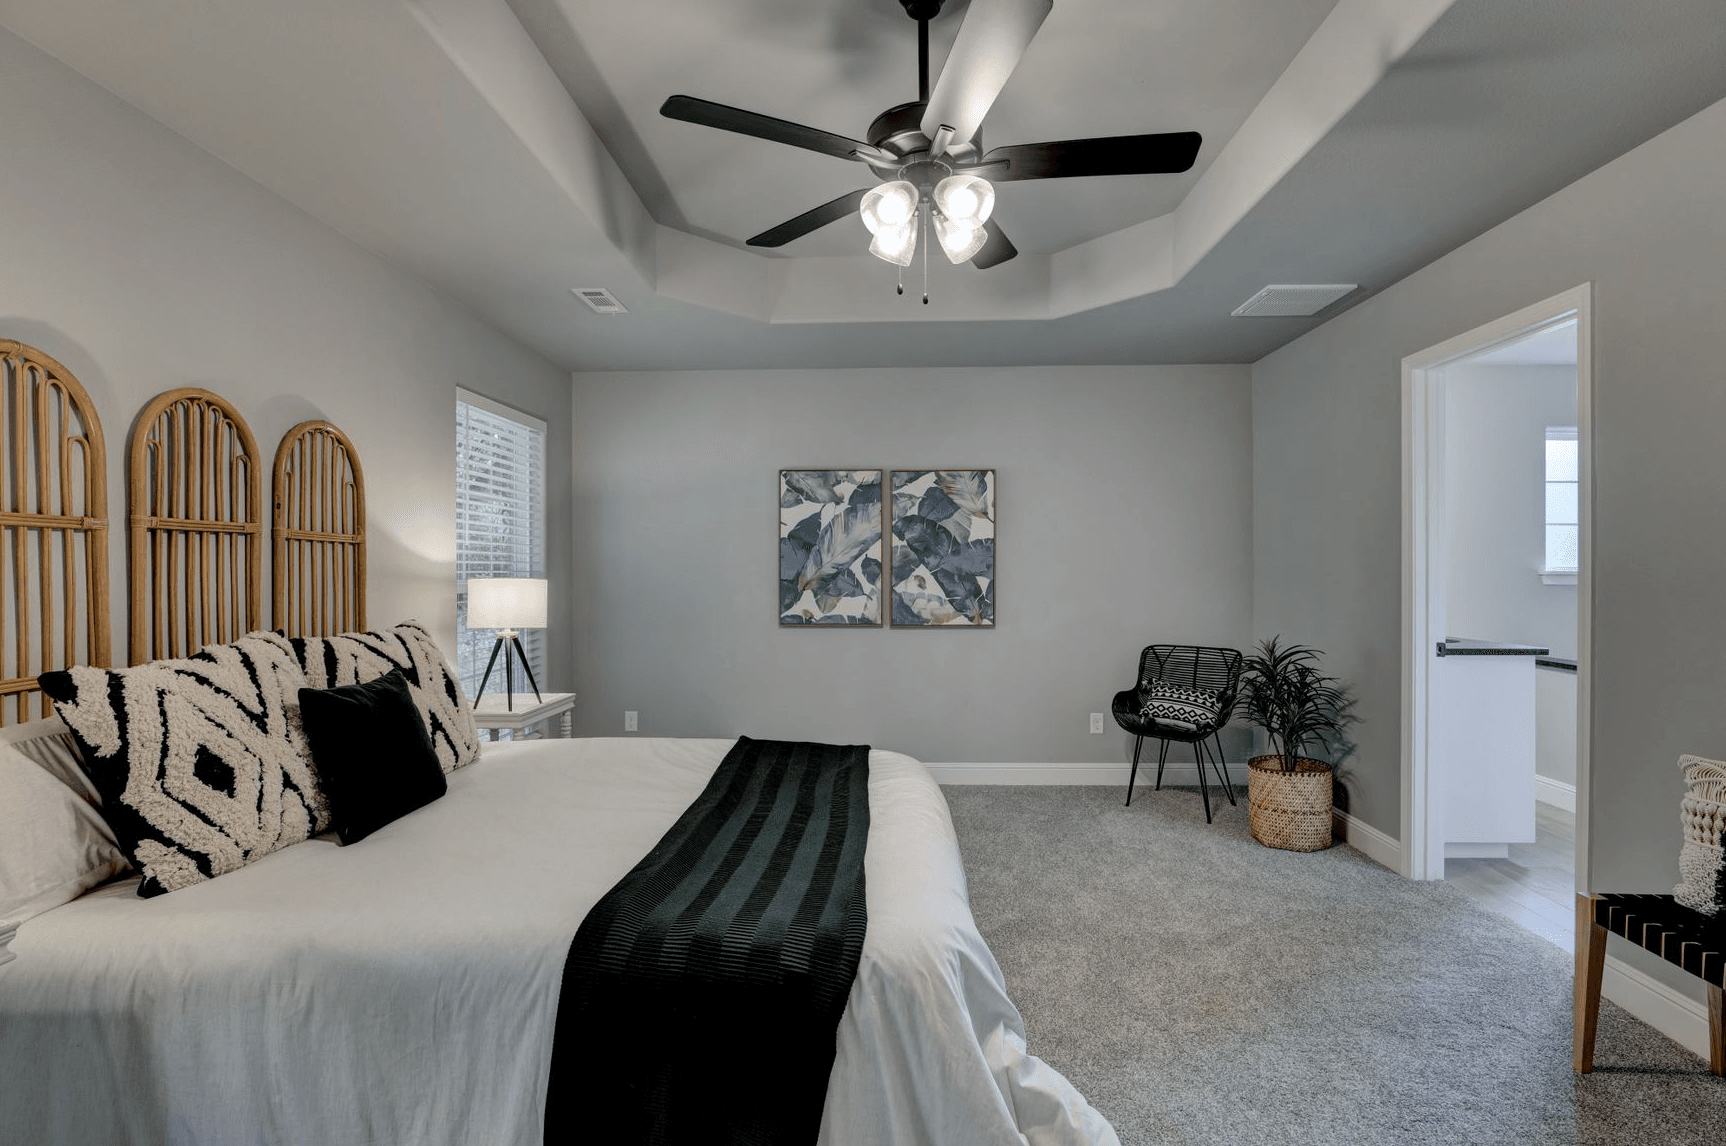 Bedroom featured in the 1700KI Series By Schuber Mitchell Homes in Joplin, MO